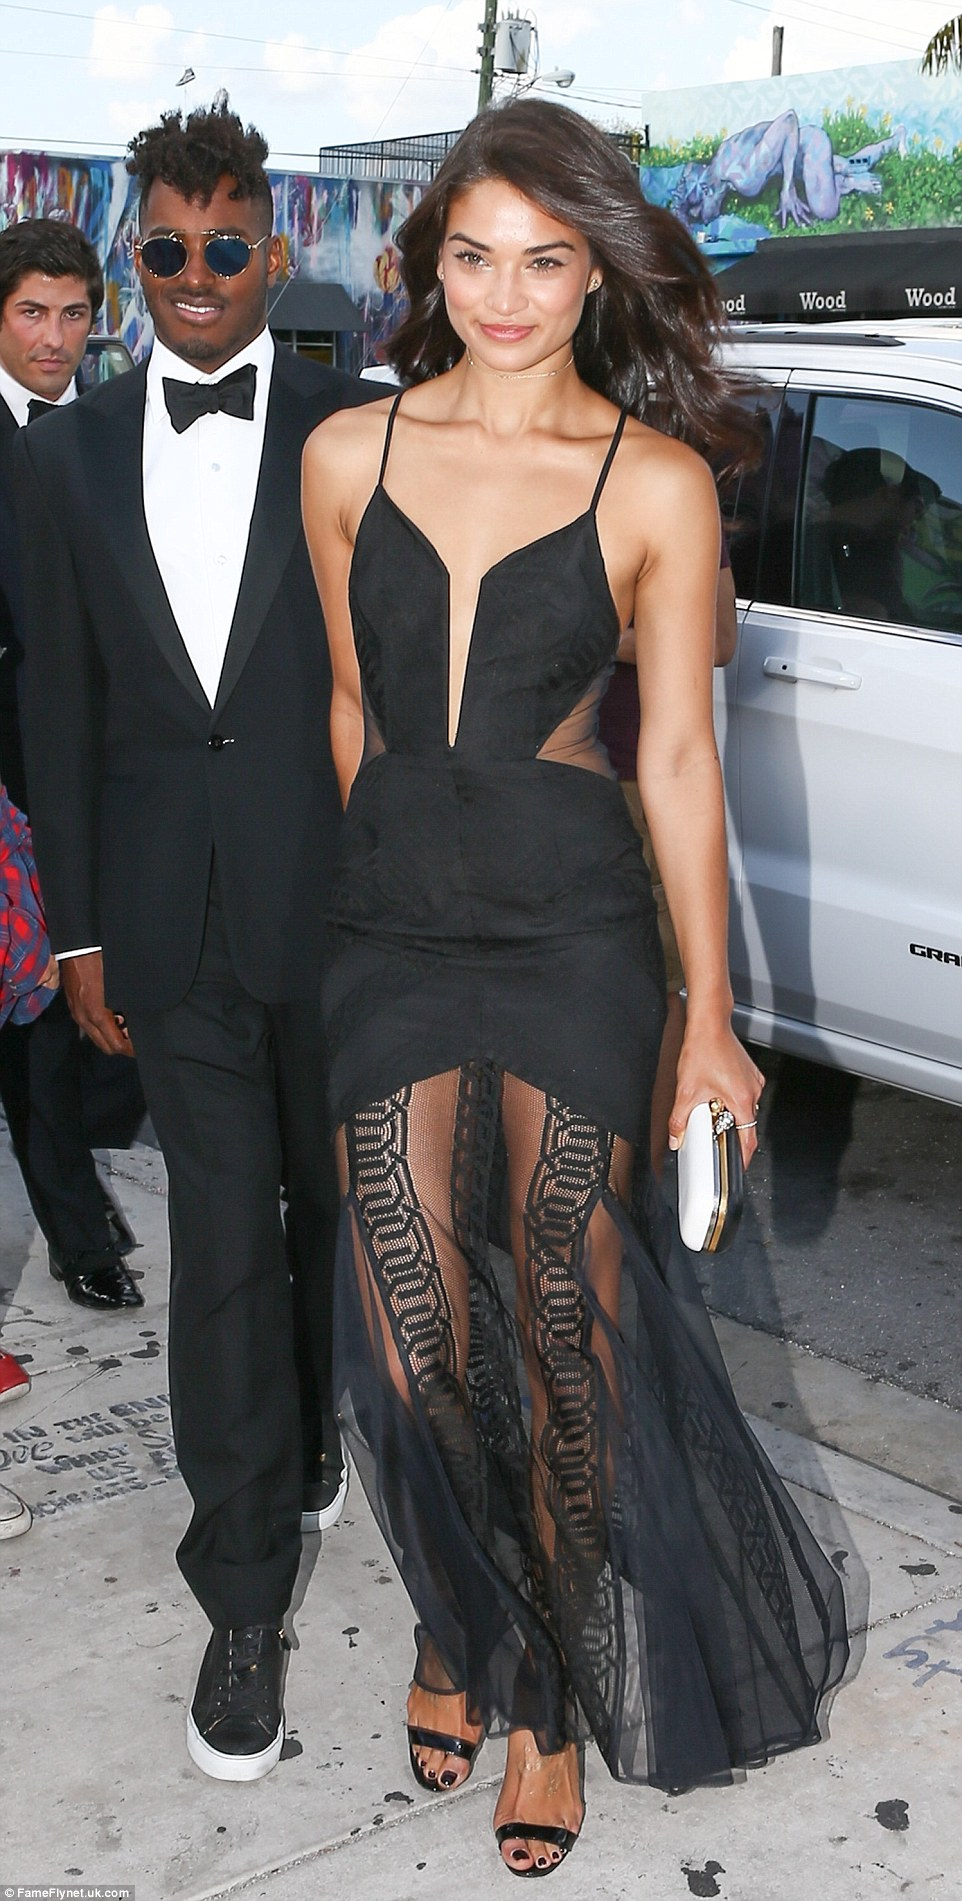 Model Shanina Shaik wore a slashed front black dress with a sheer mesh skirt